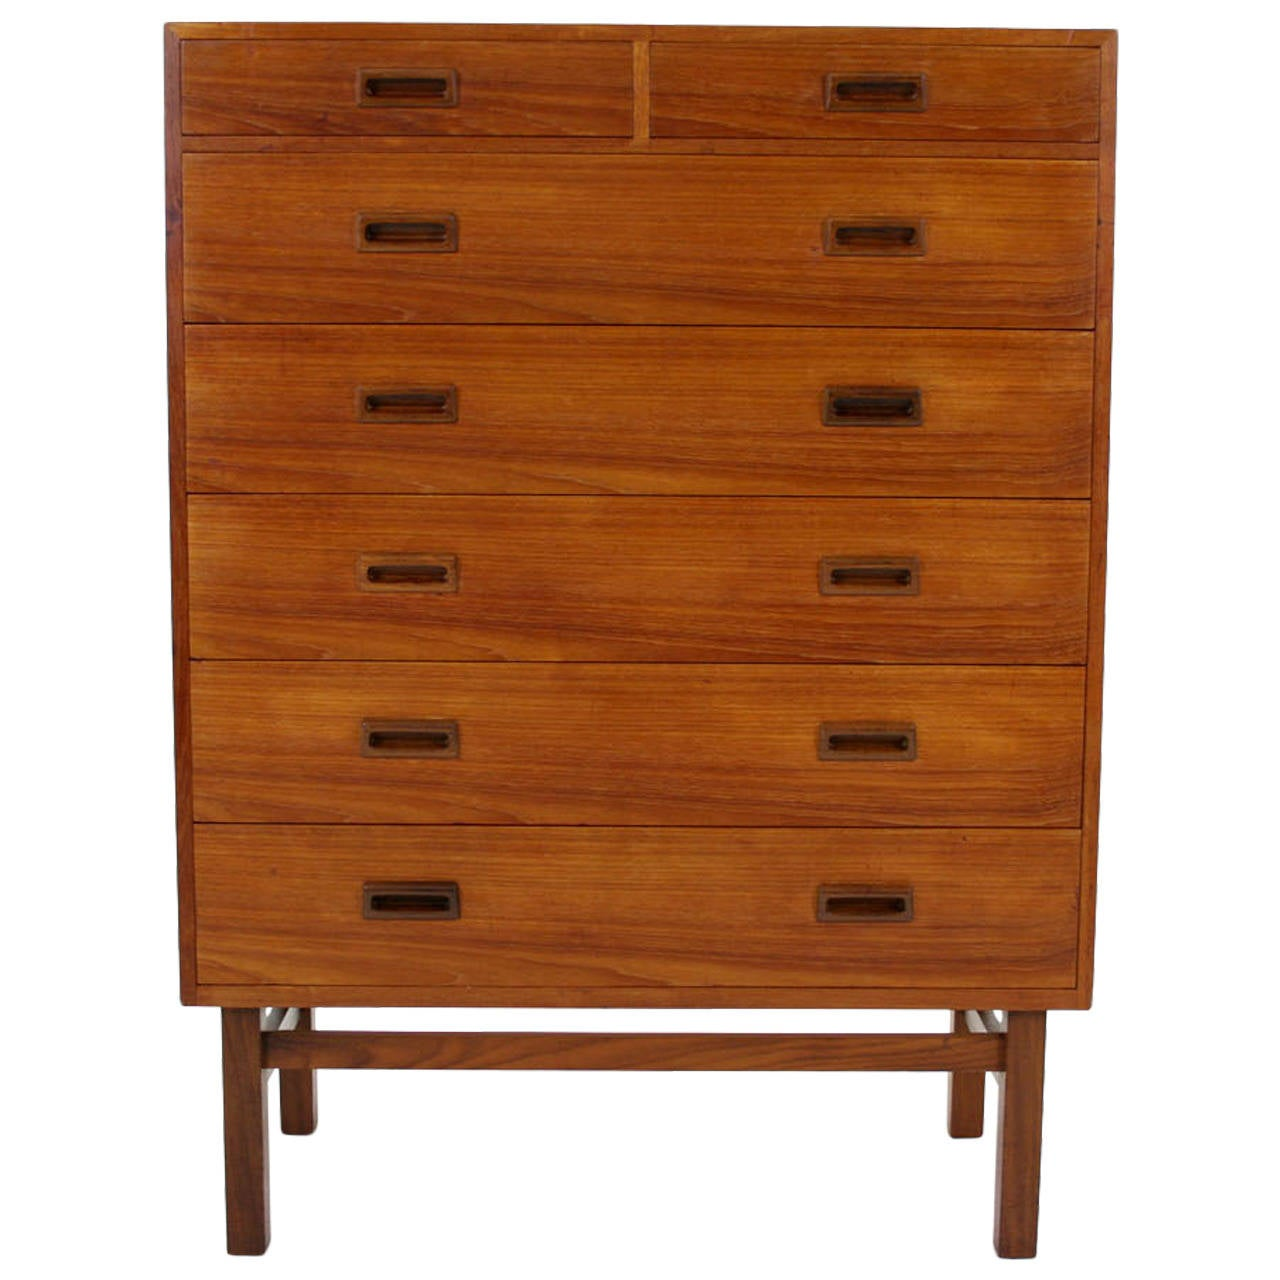 #AC5412  Modern Teak Dresser Or Chest Of Drawers By Borge Mogensen At 1stdibs with 1280x1280 px of Highly Rated Chest Of Drawers Or Dresser 12801280 picture/photo @ avoidforclosure.info